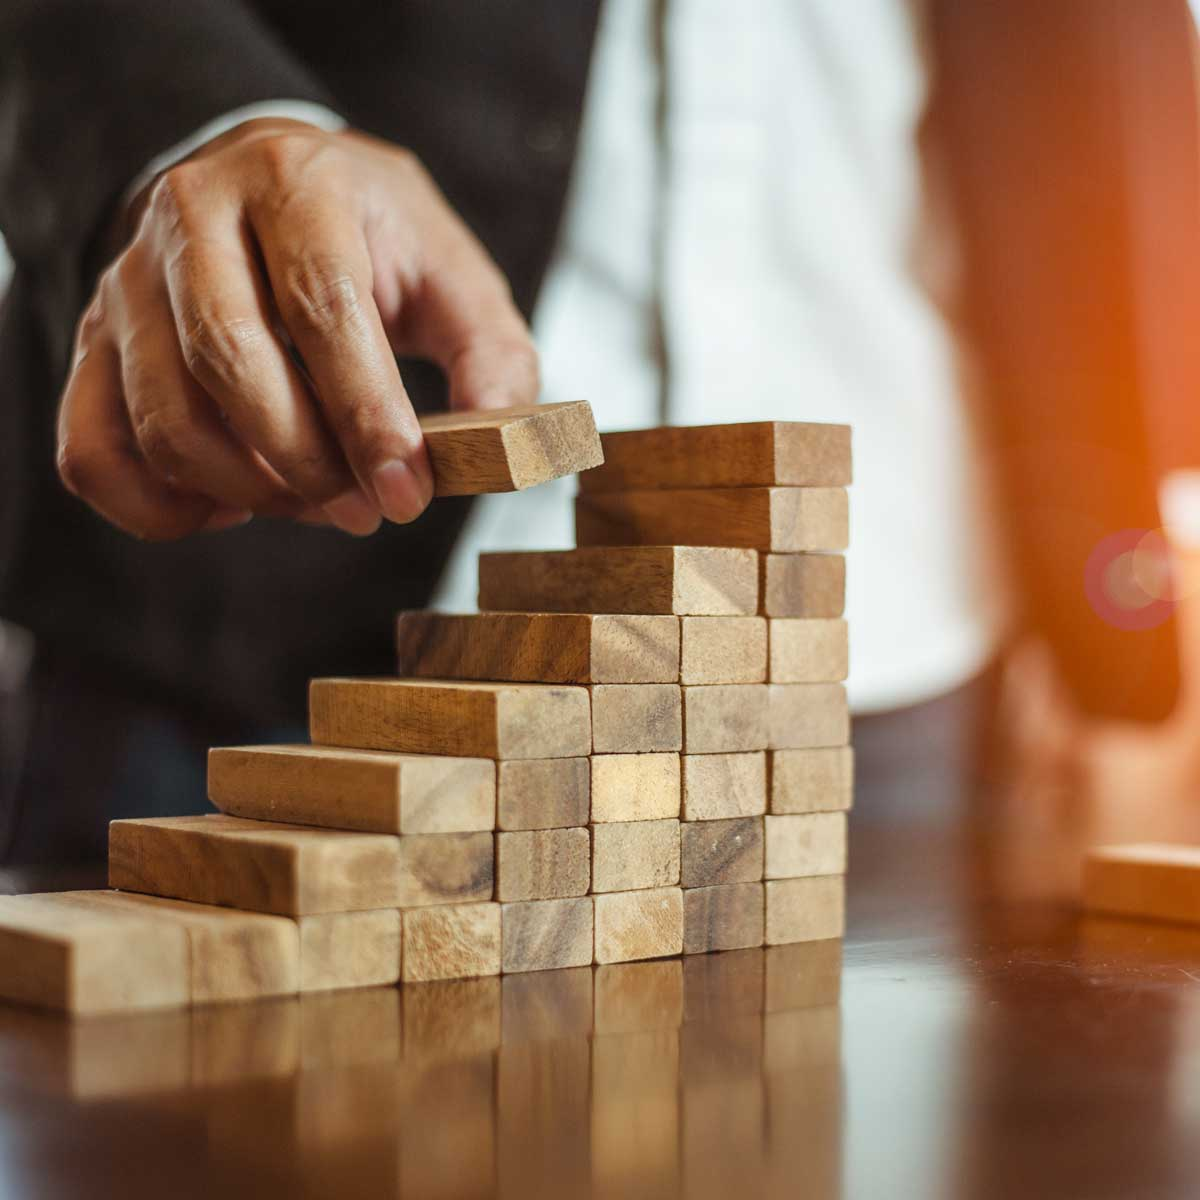 plan and strategy in business. hand of man has piling up and stacking a wooden block. Businessman Building The Success.